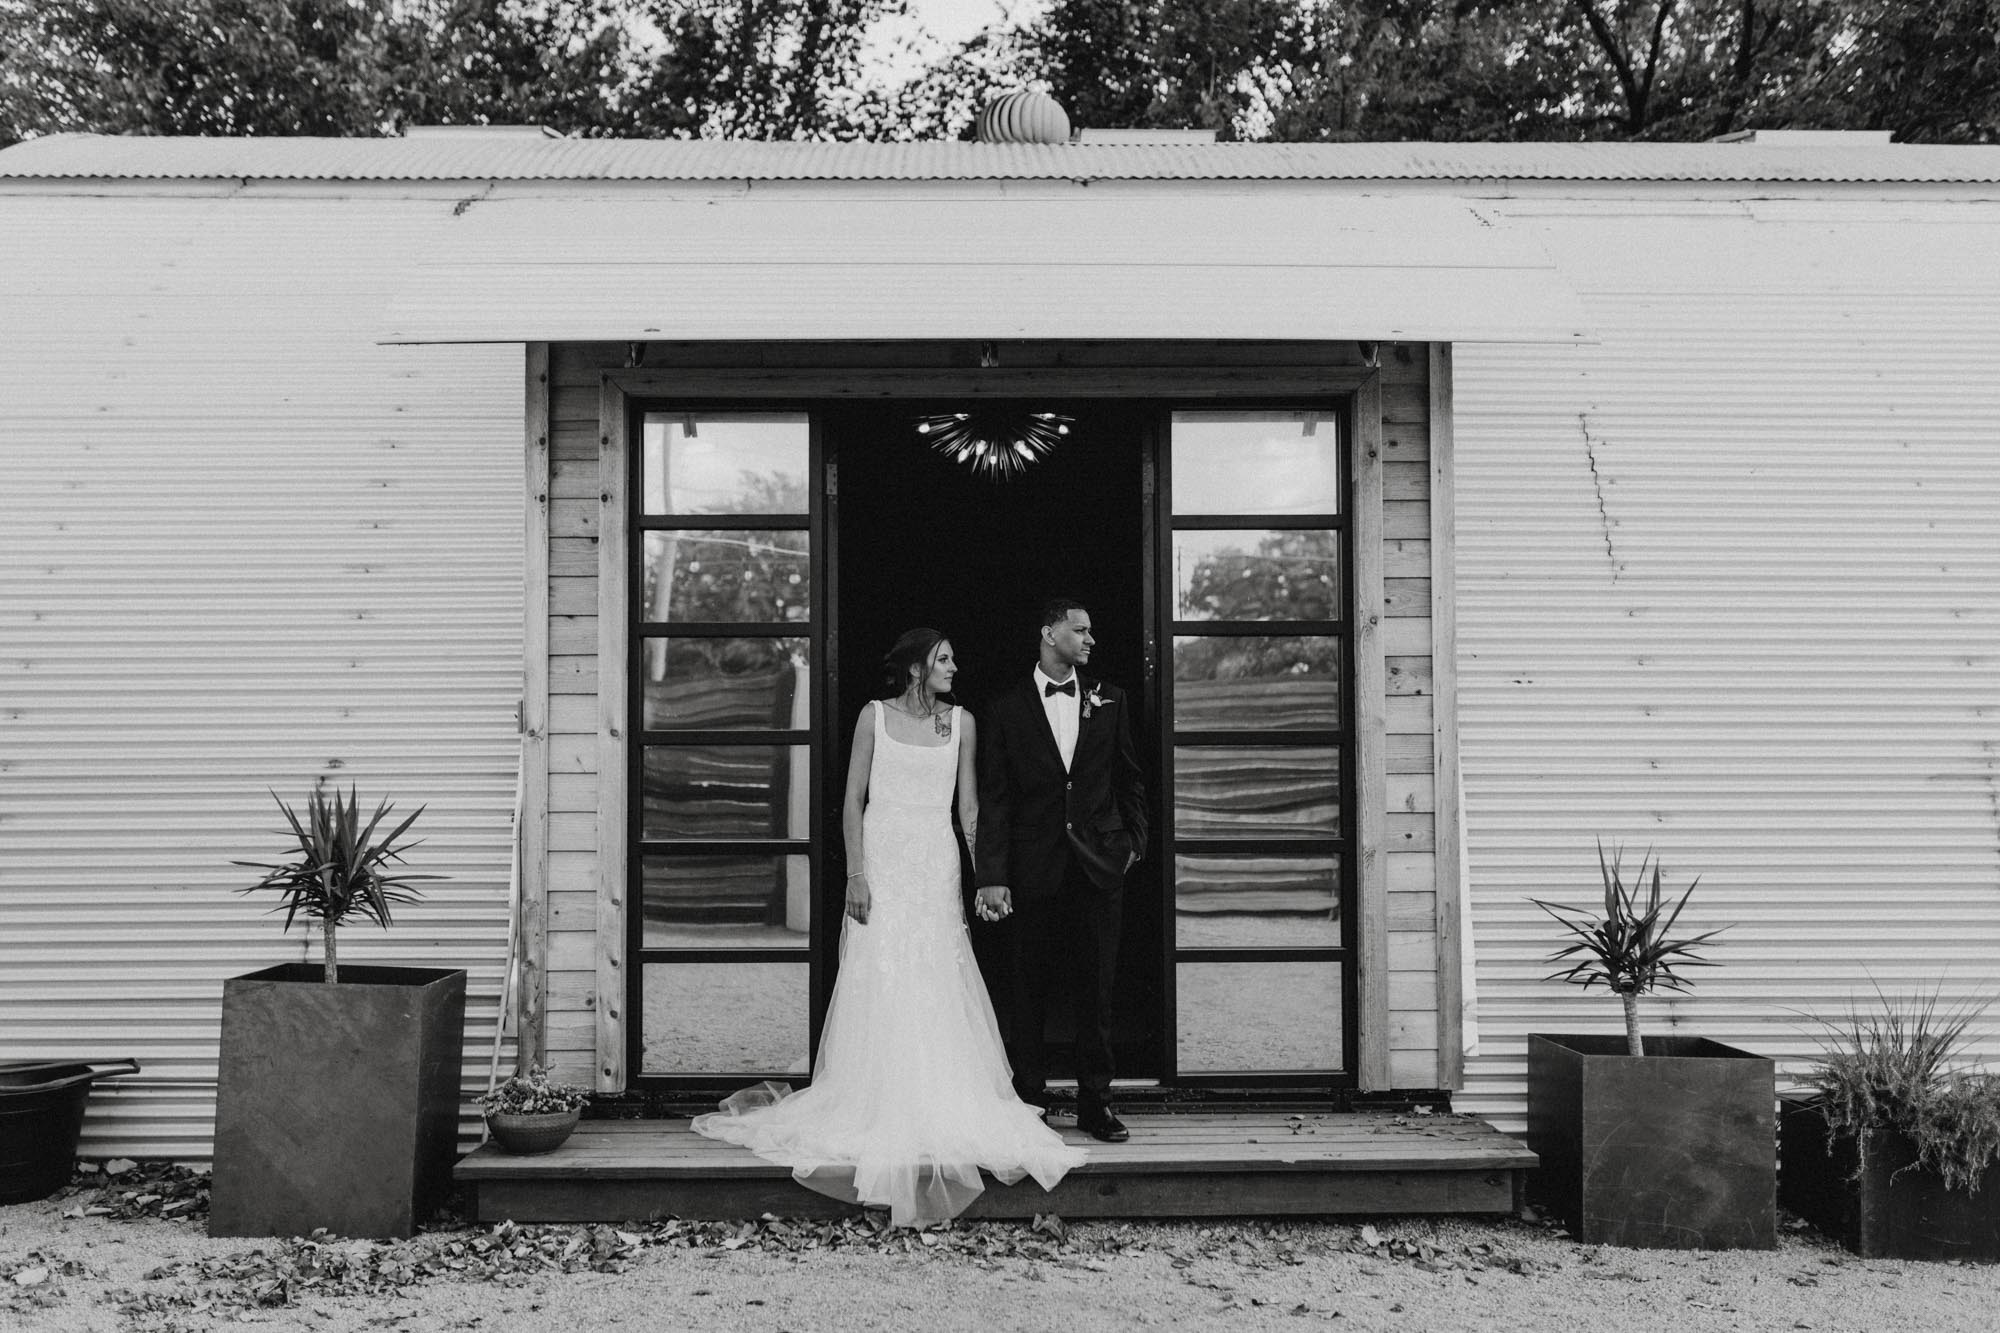 moody black and white photo of couple standing in doorway